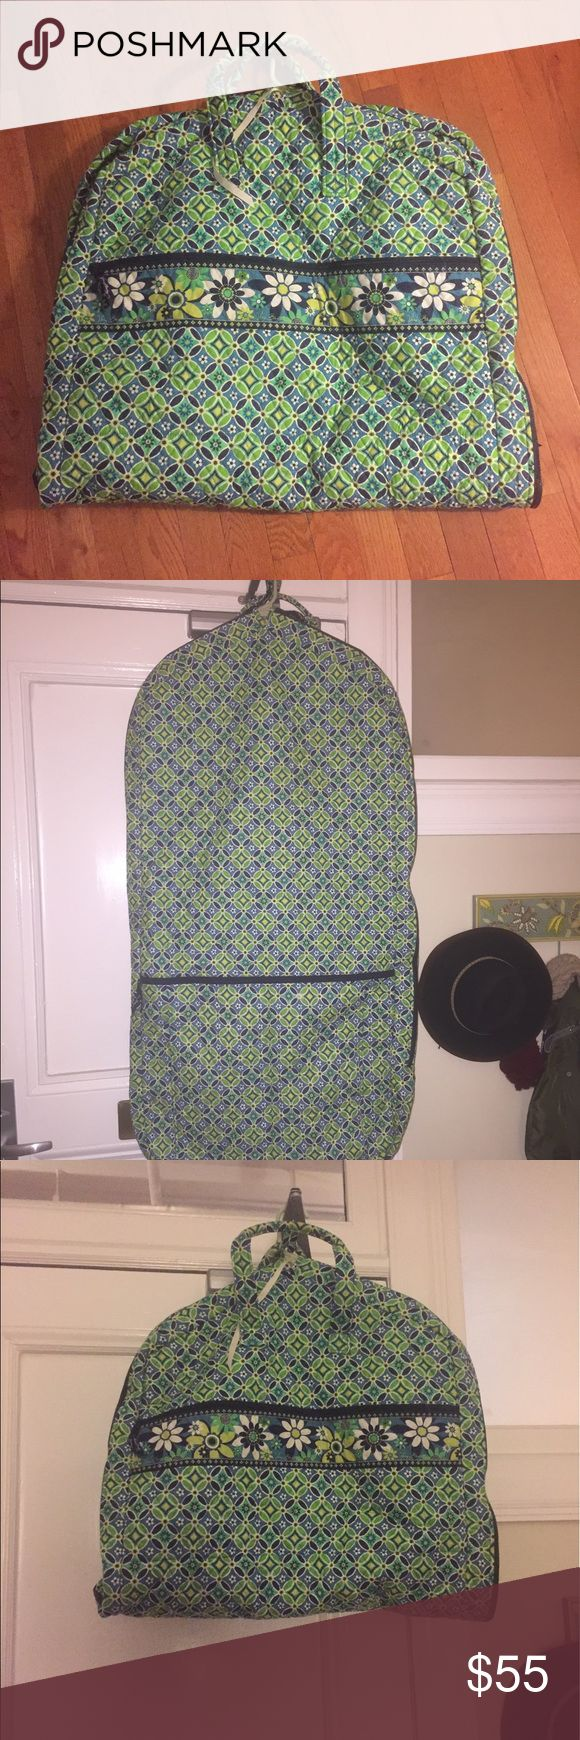 Vera Bradley Garment Bag Vera Bradley garment bag.  Two pockets on outside, great for holding shoes.  Bag is in excellent condition and rarely used. Vera Bradley Bags Travel Bags